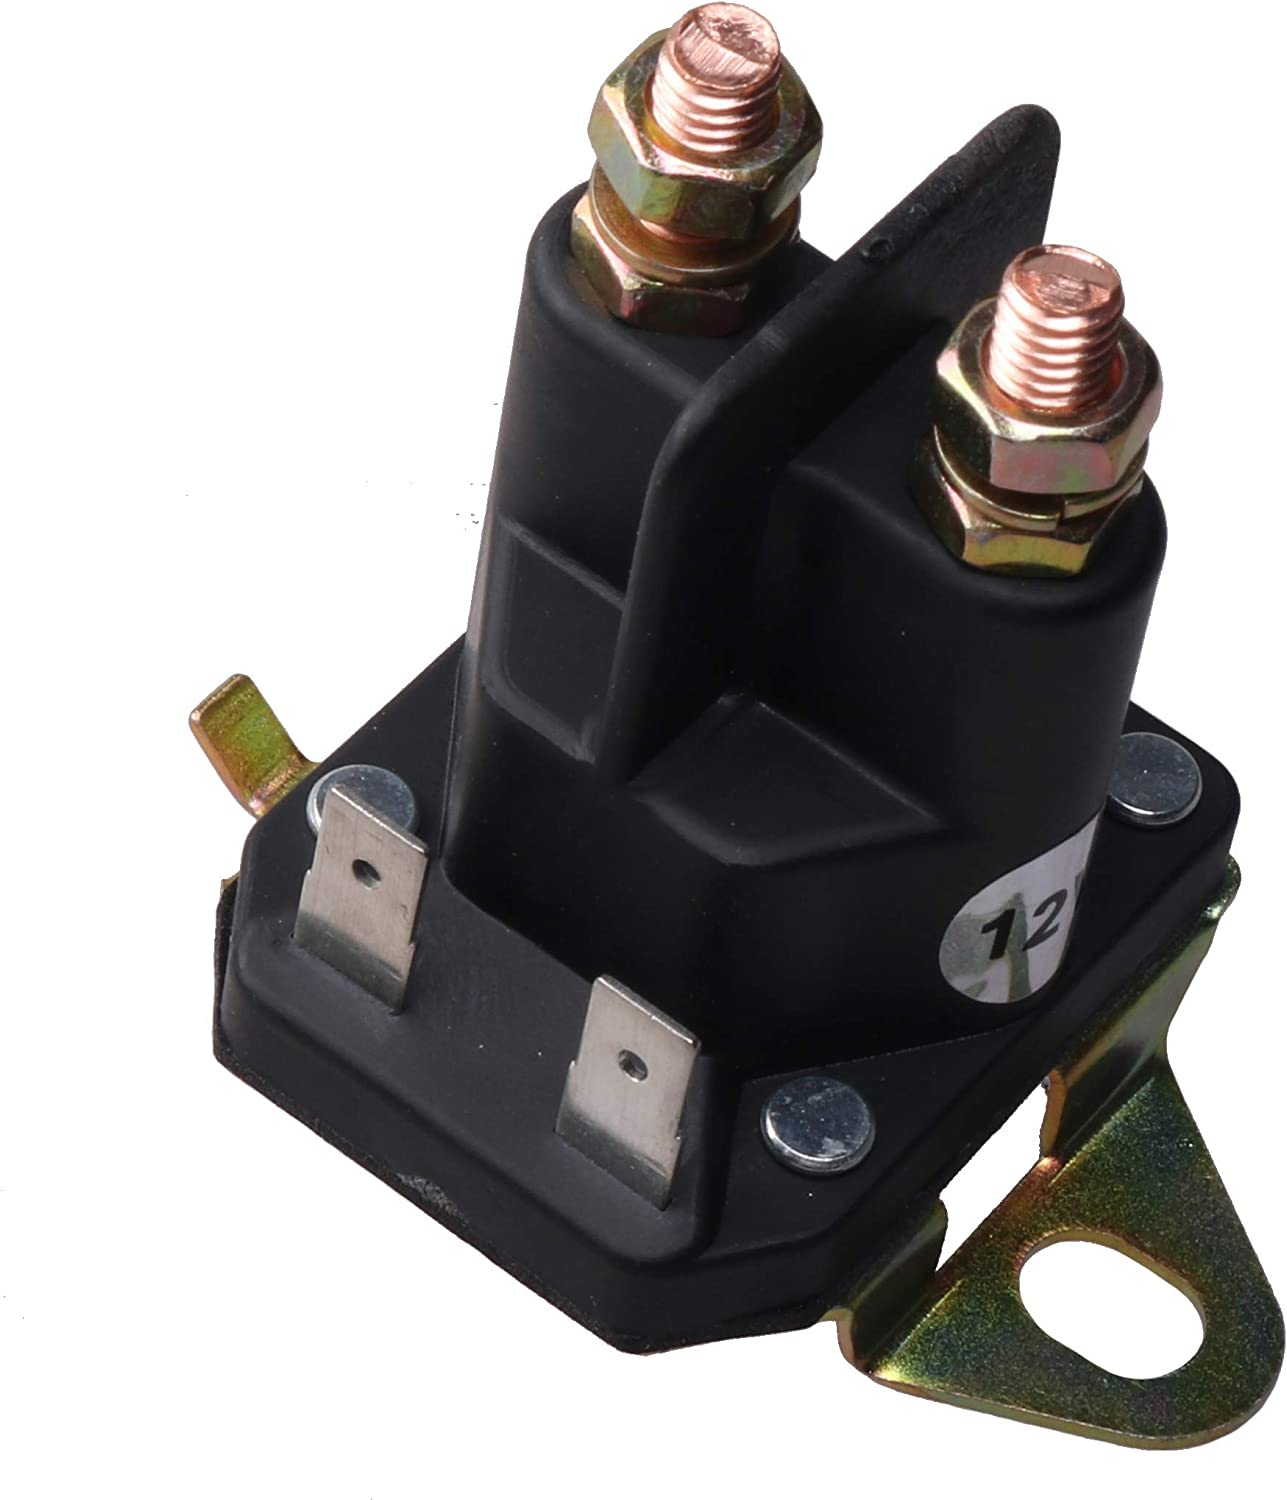 zt truck parts Starter Solenoid Fit for 192507 Lawn Tractor 582042801